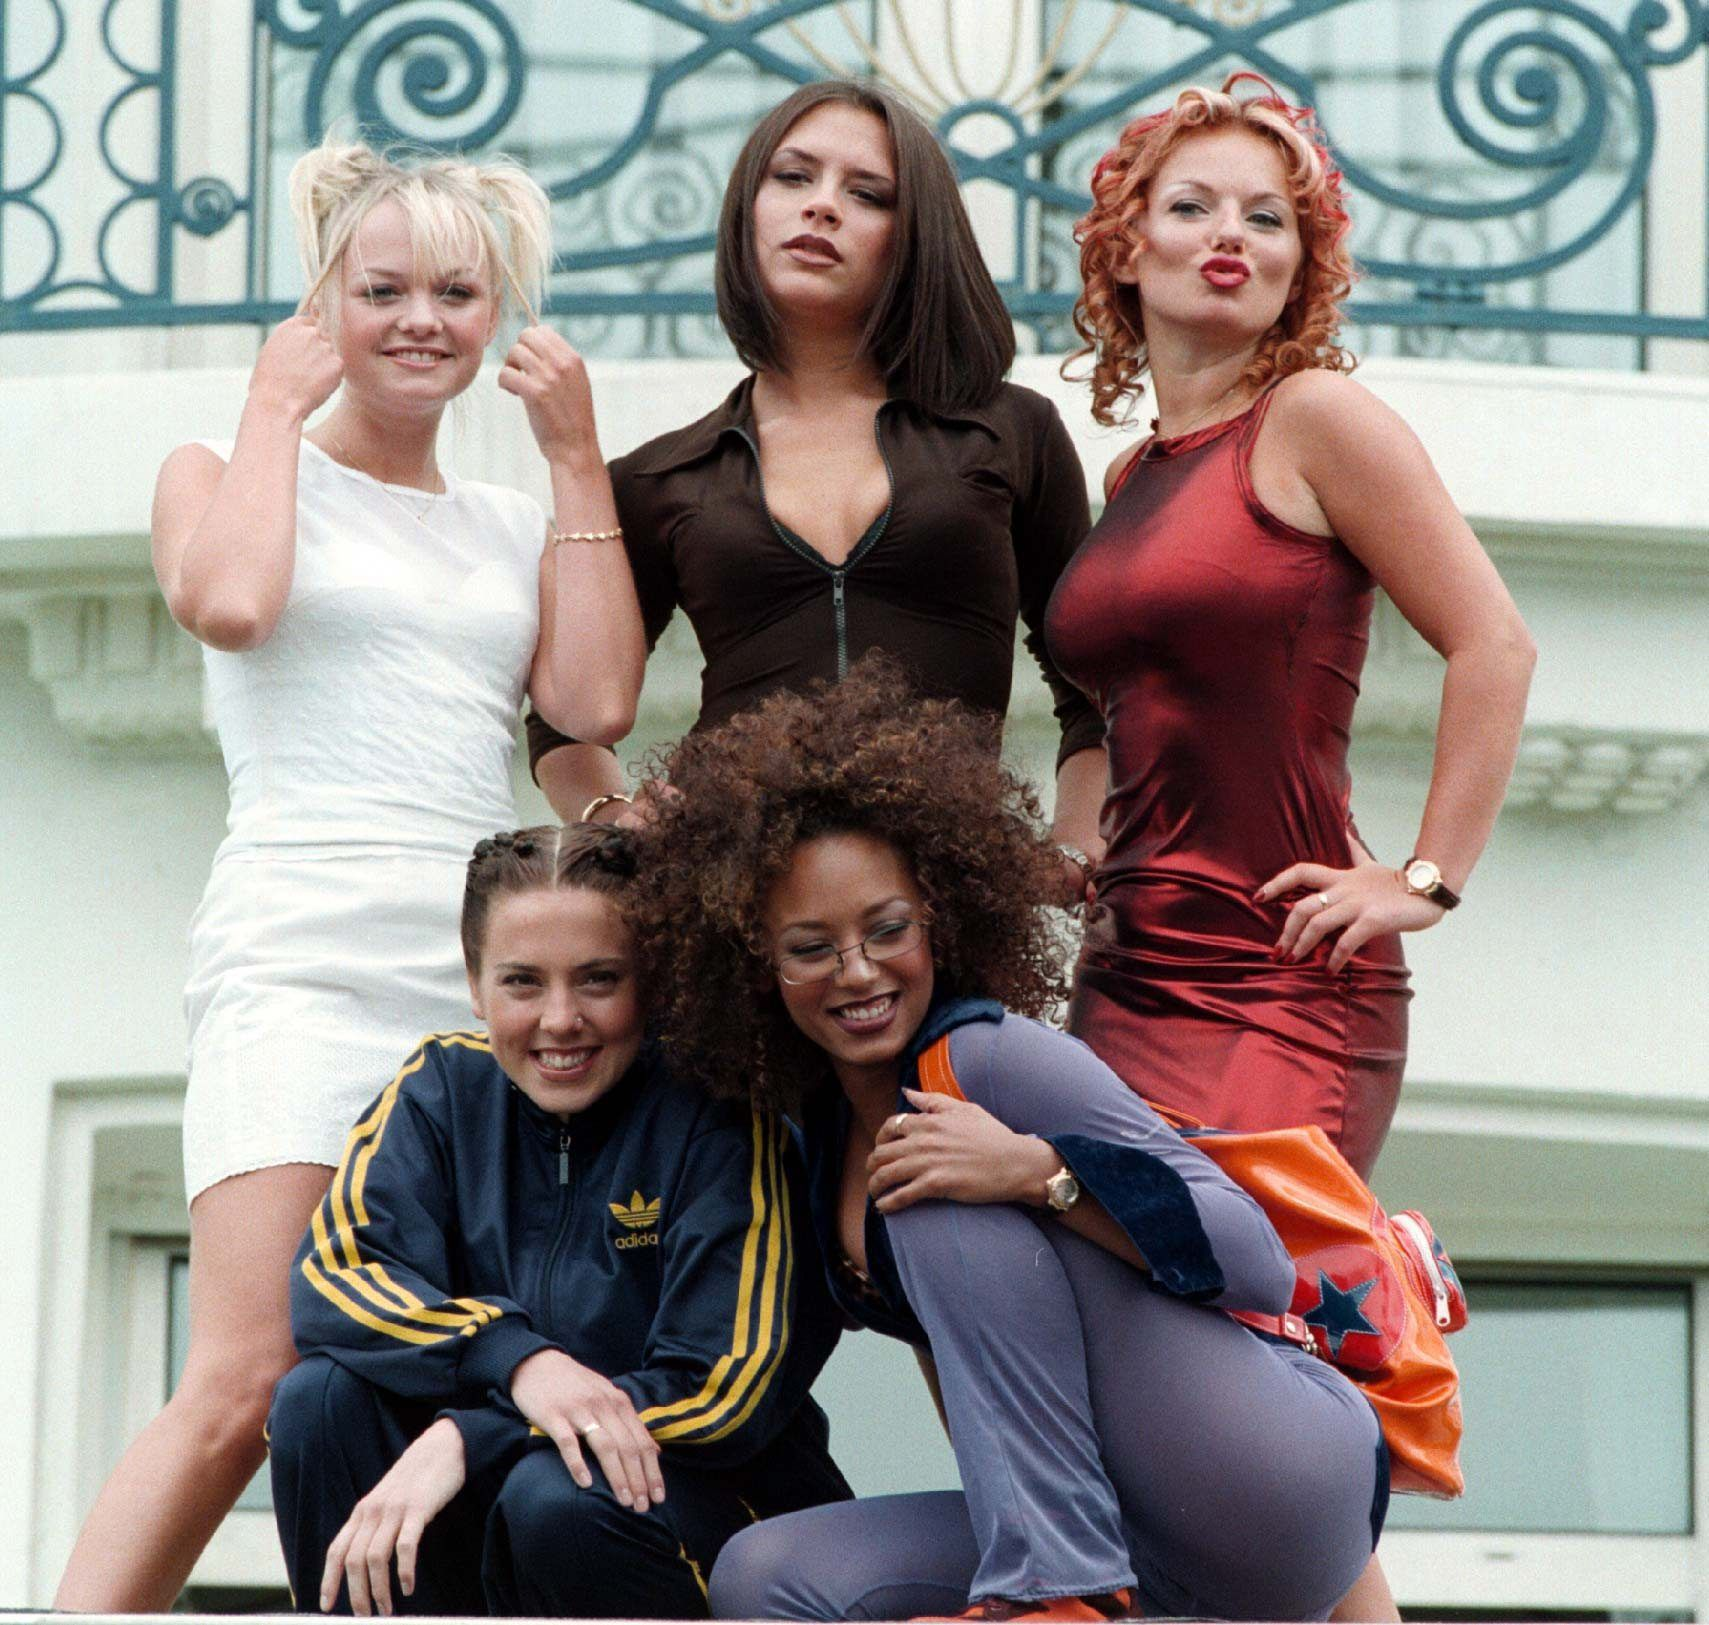 Spice Girls: How Much Are They Worth Now?